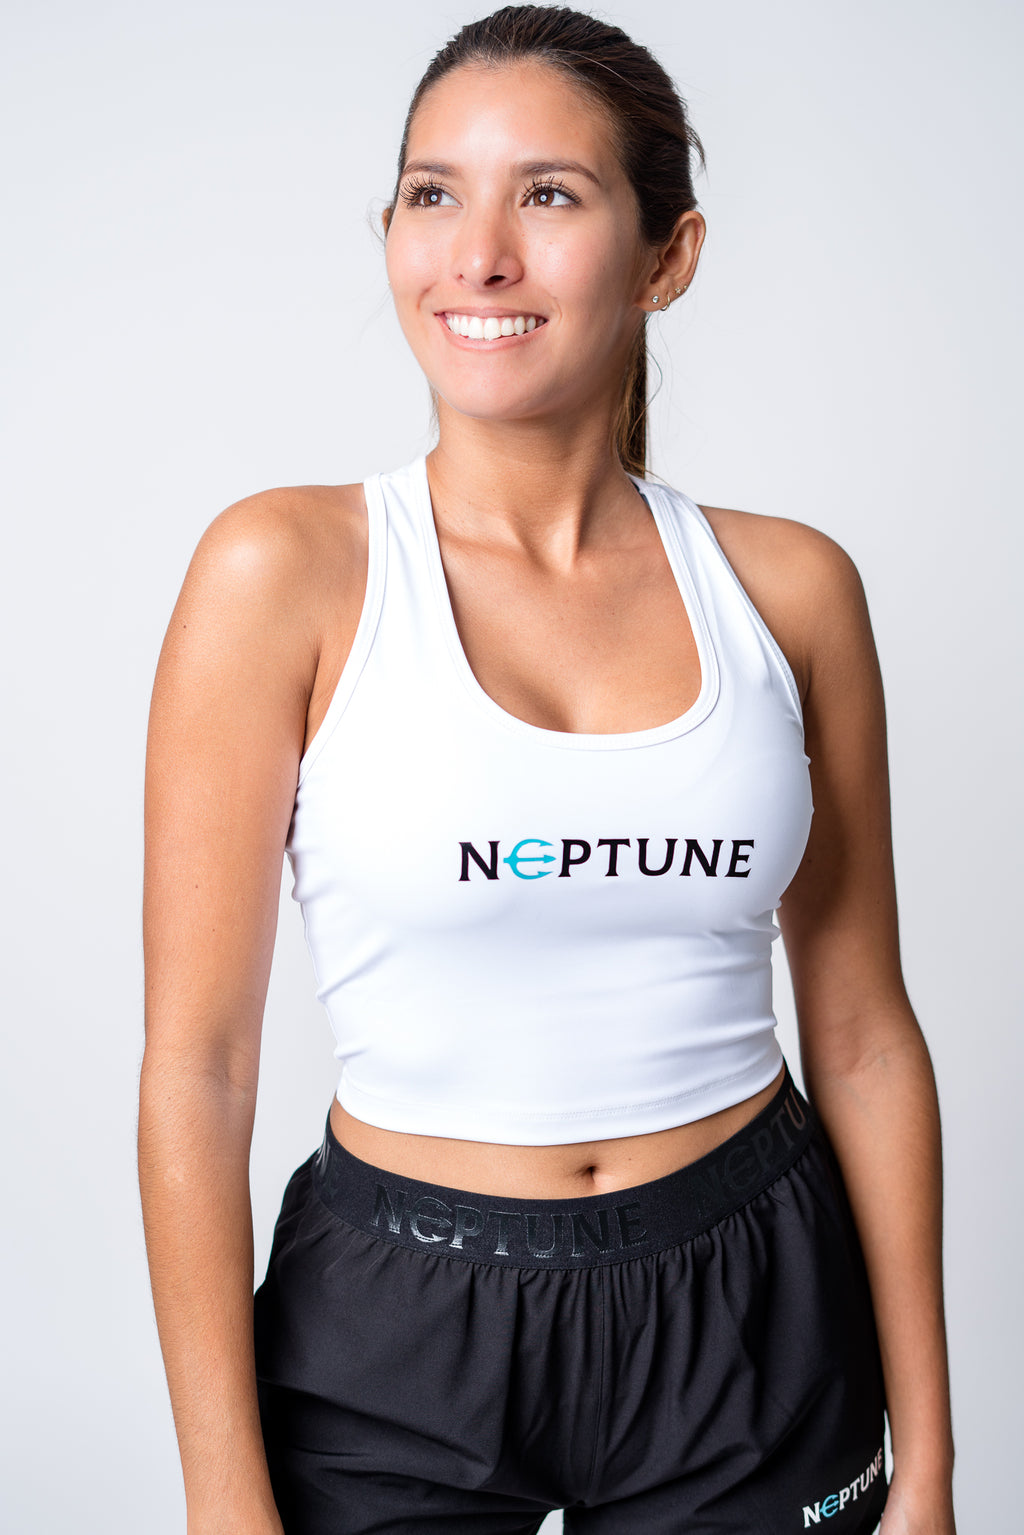 Womens white crop top with neptune logo on center